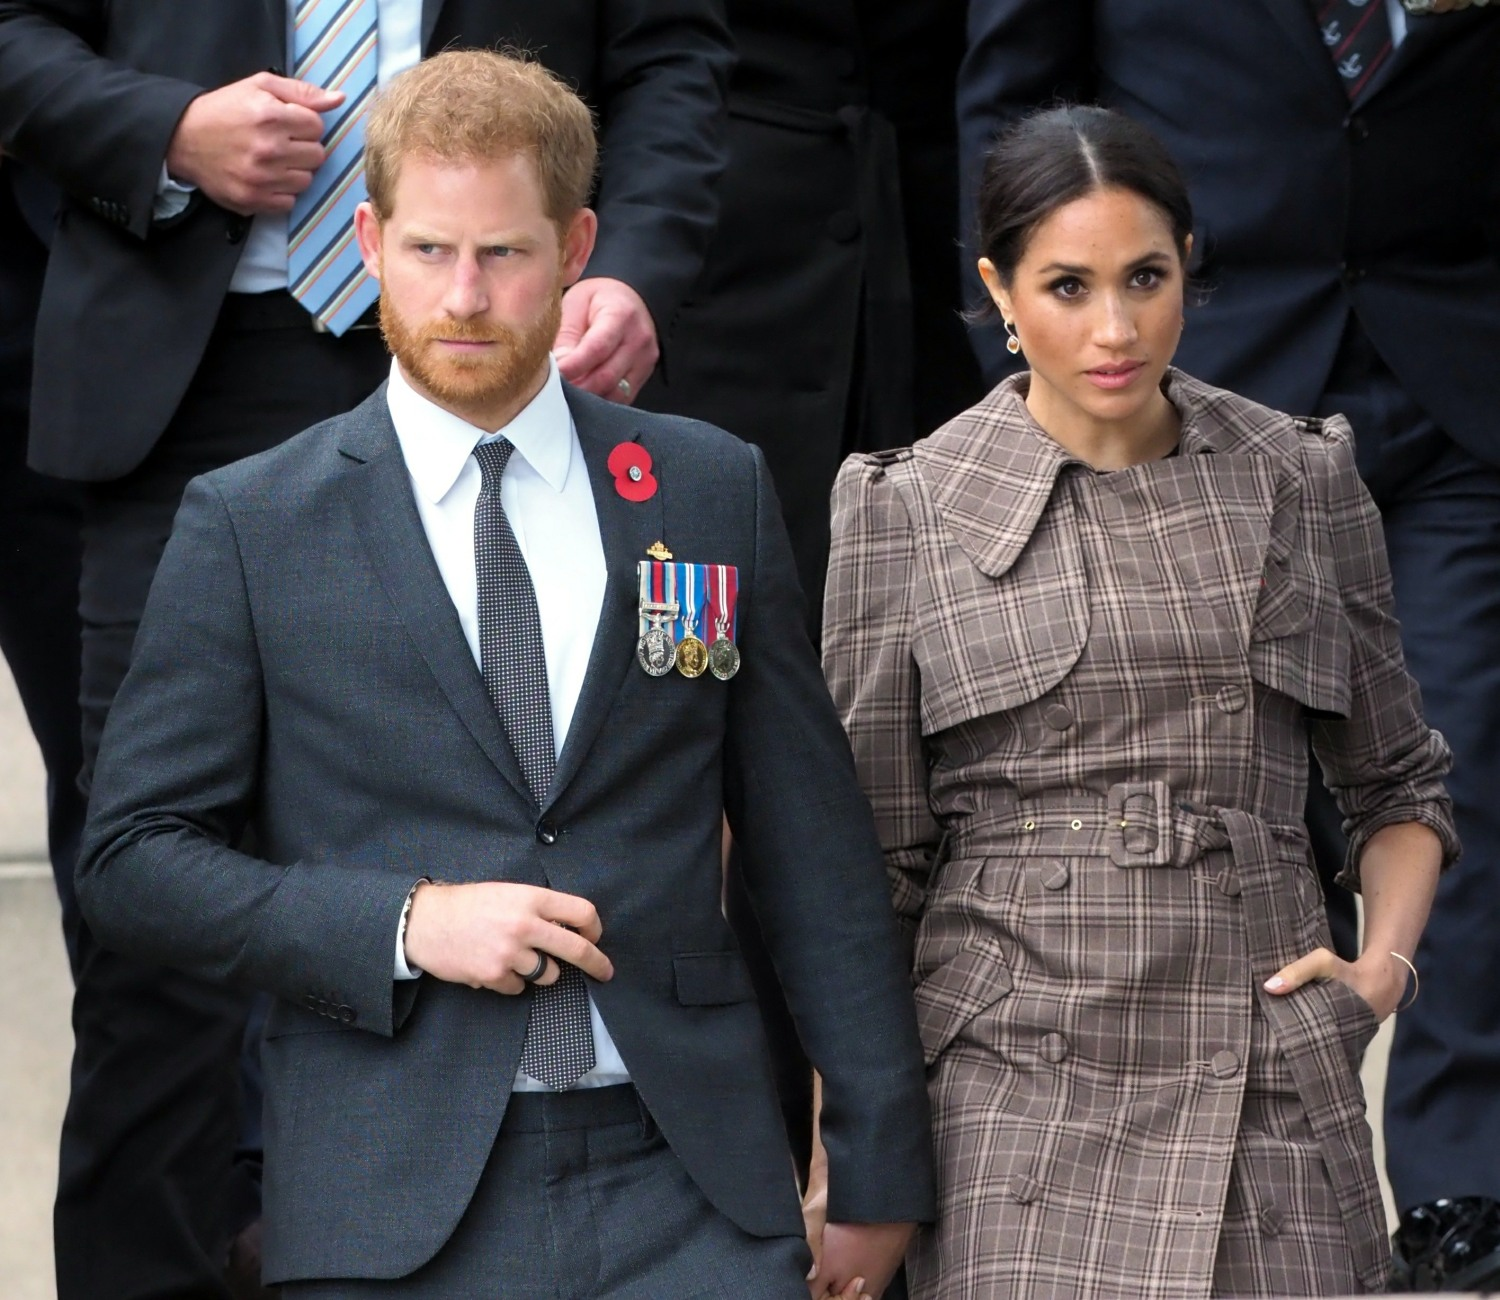 VF: The Sussexes Probably Won't Do Any